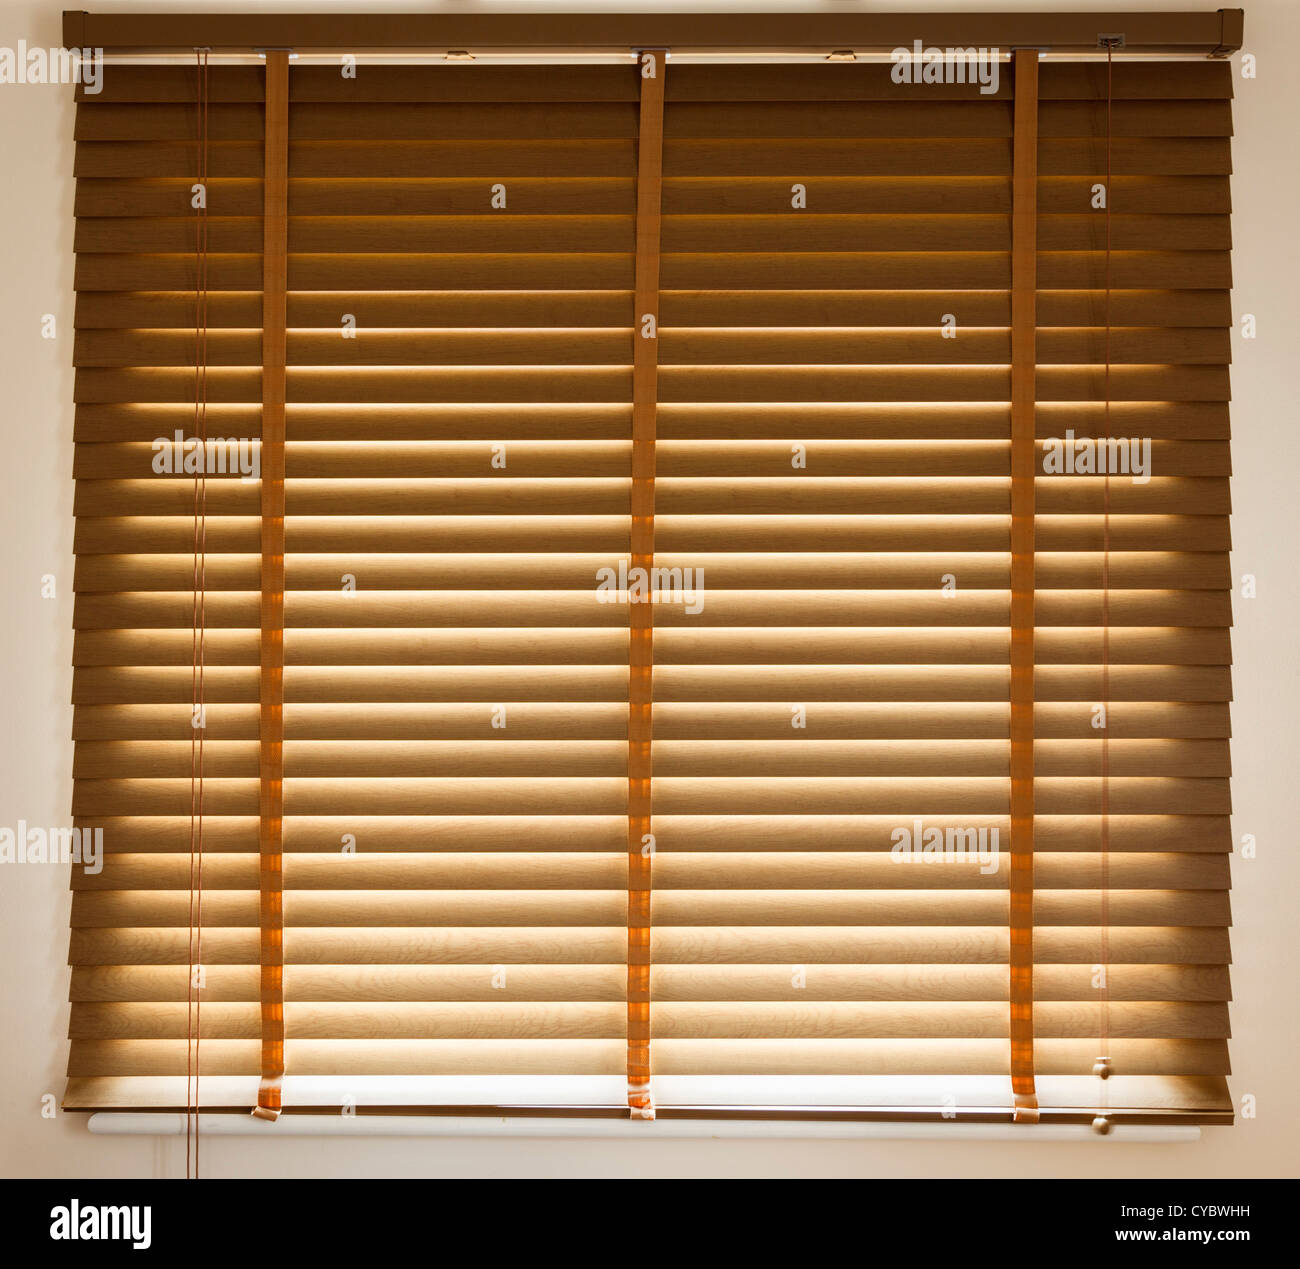 Venetian blinds closed - Stock Image